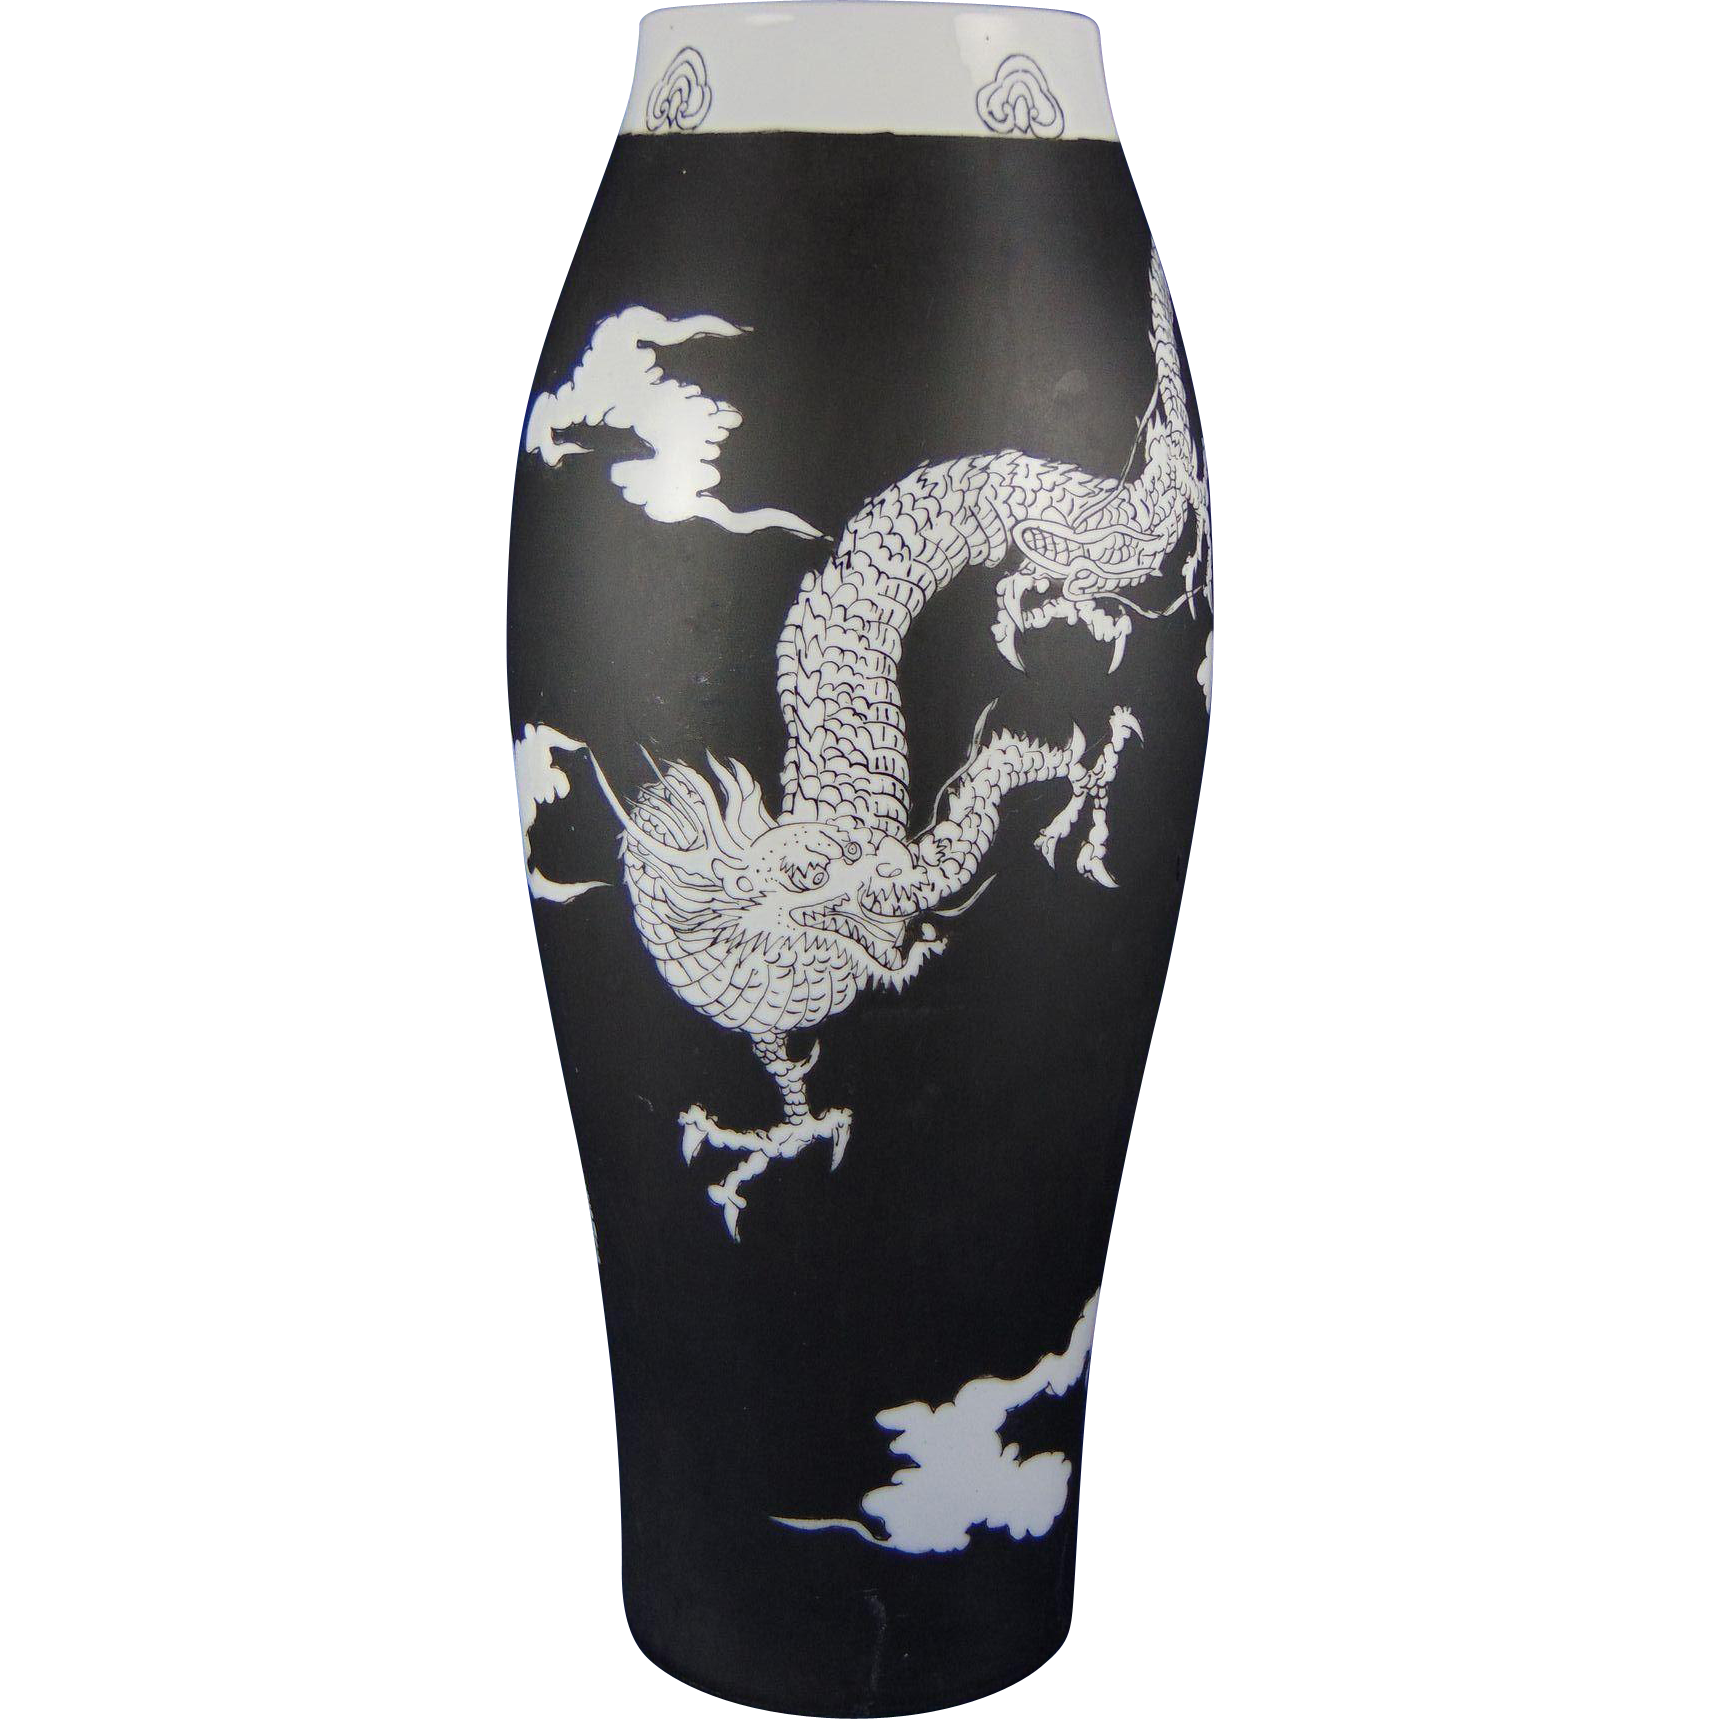 porcelain blank black  white chinese dragon design vase (signed  - porcelain blank black  white chinese dragon design vase (signed violahymandated )